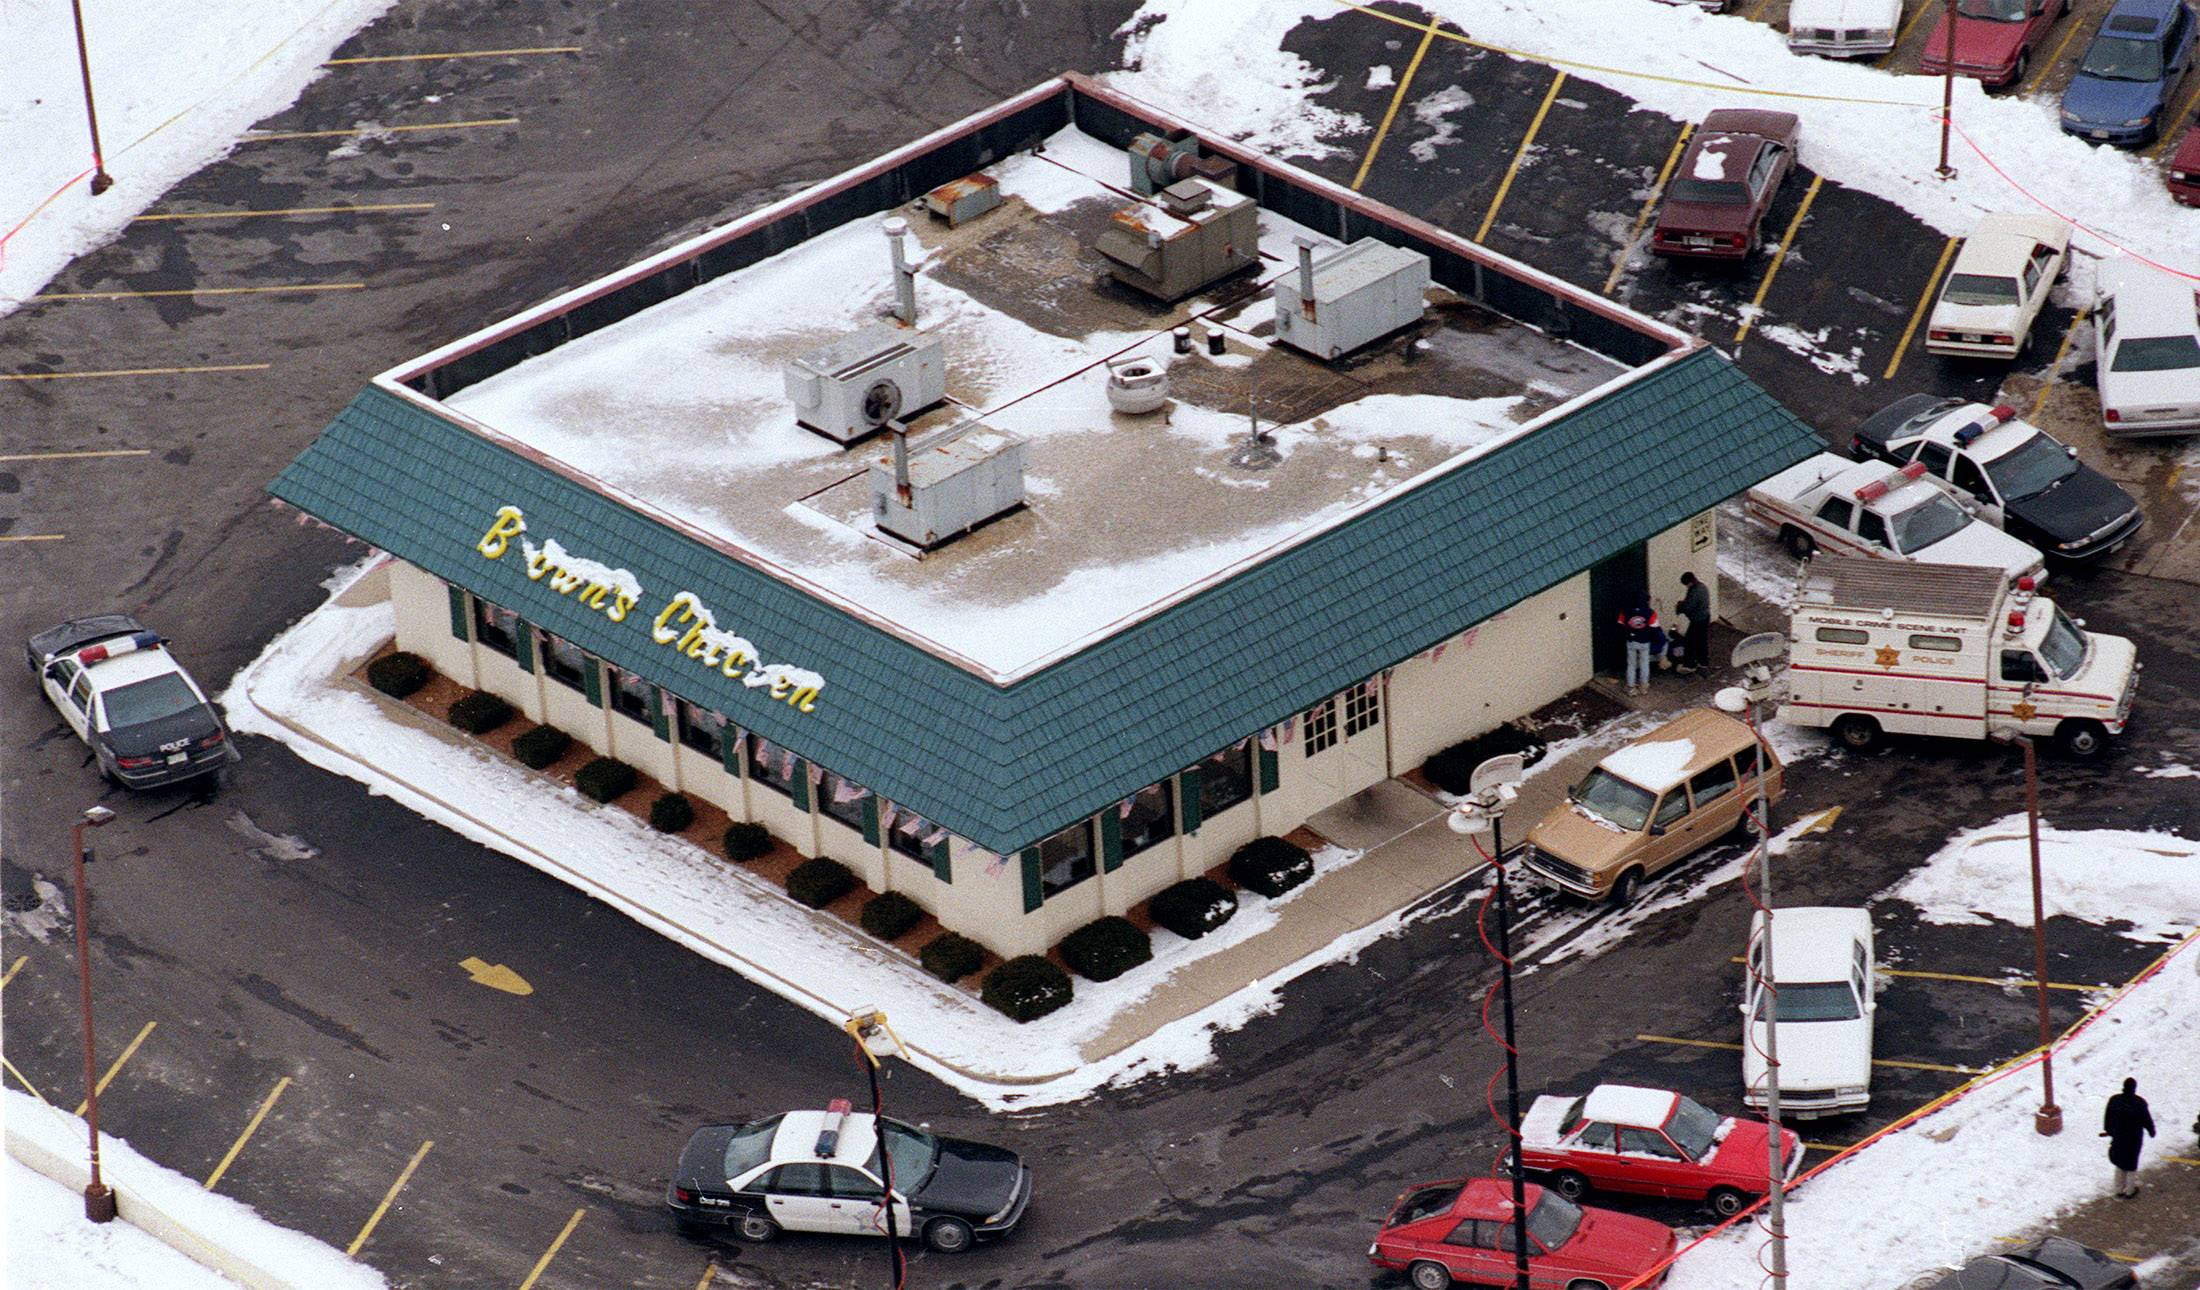 How 1993 Brown's Chicken murders changed Frank Portillo's life, business forever